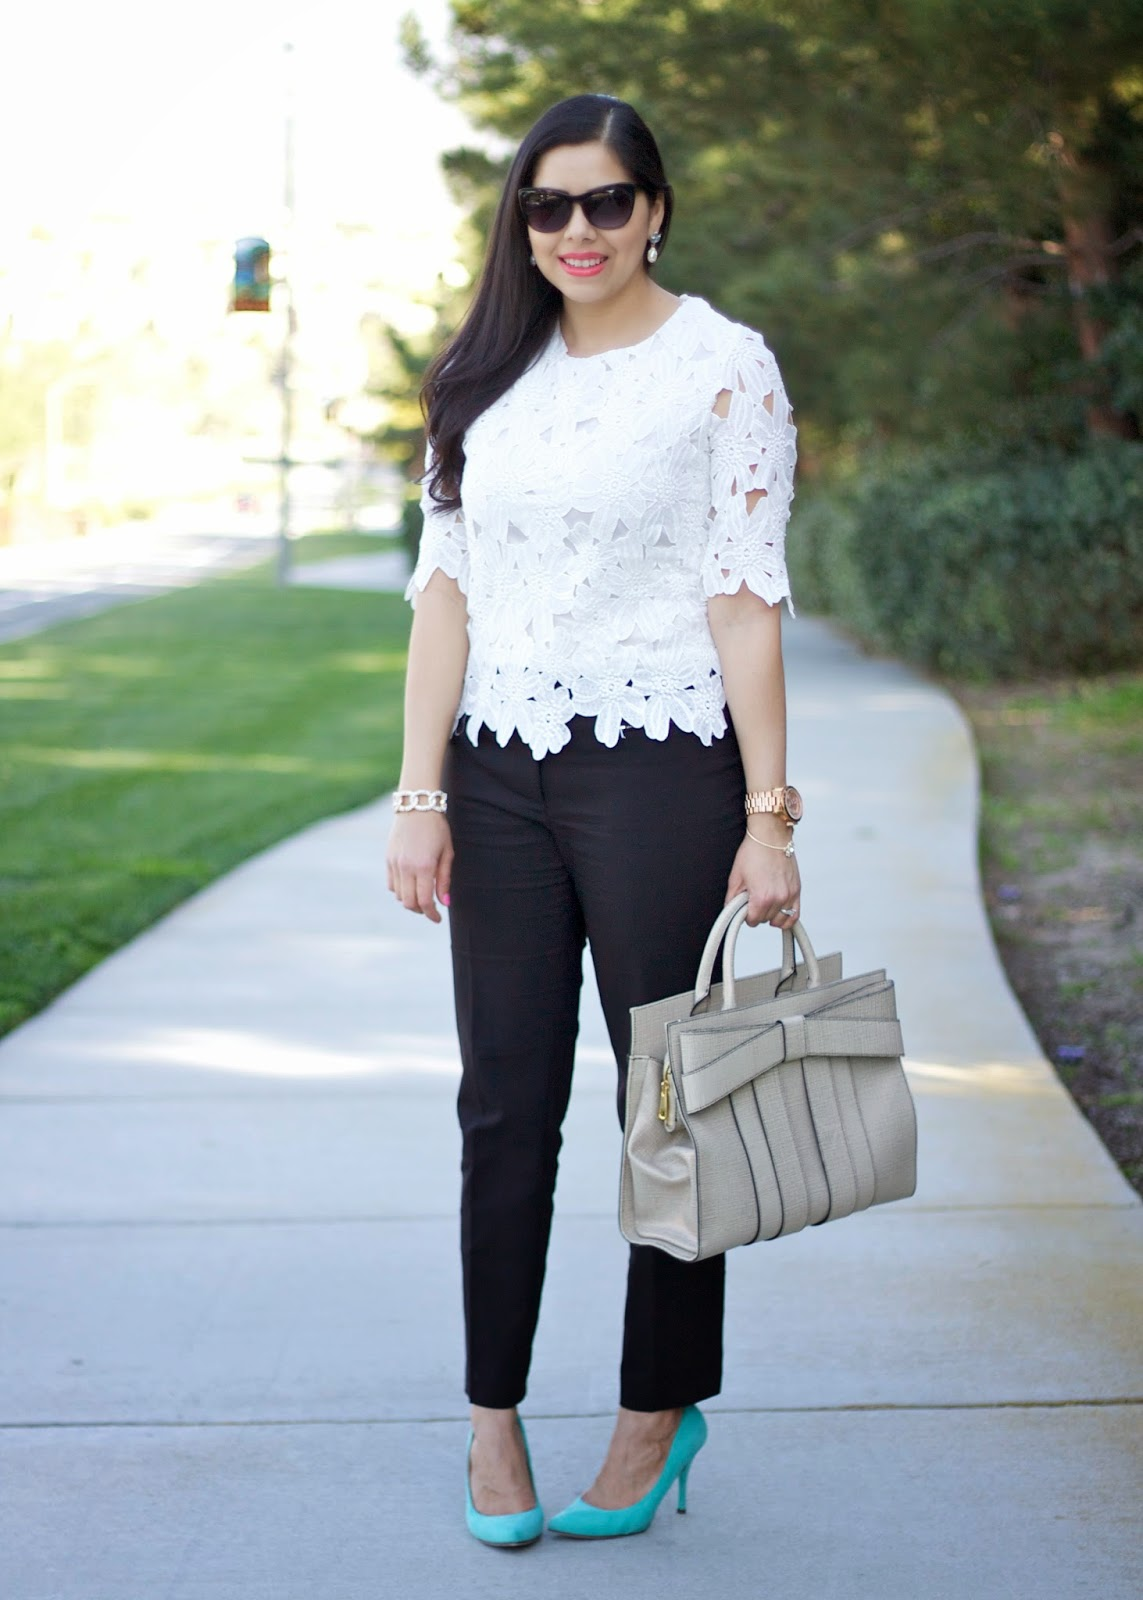 Brunch outfit, bridal shower outfit, what to wear to a baby shower, white lace and black pants, black and white cute outfit 2015